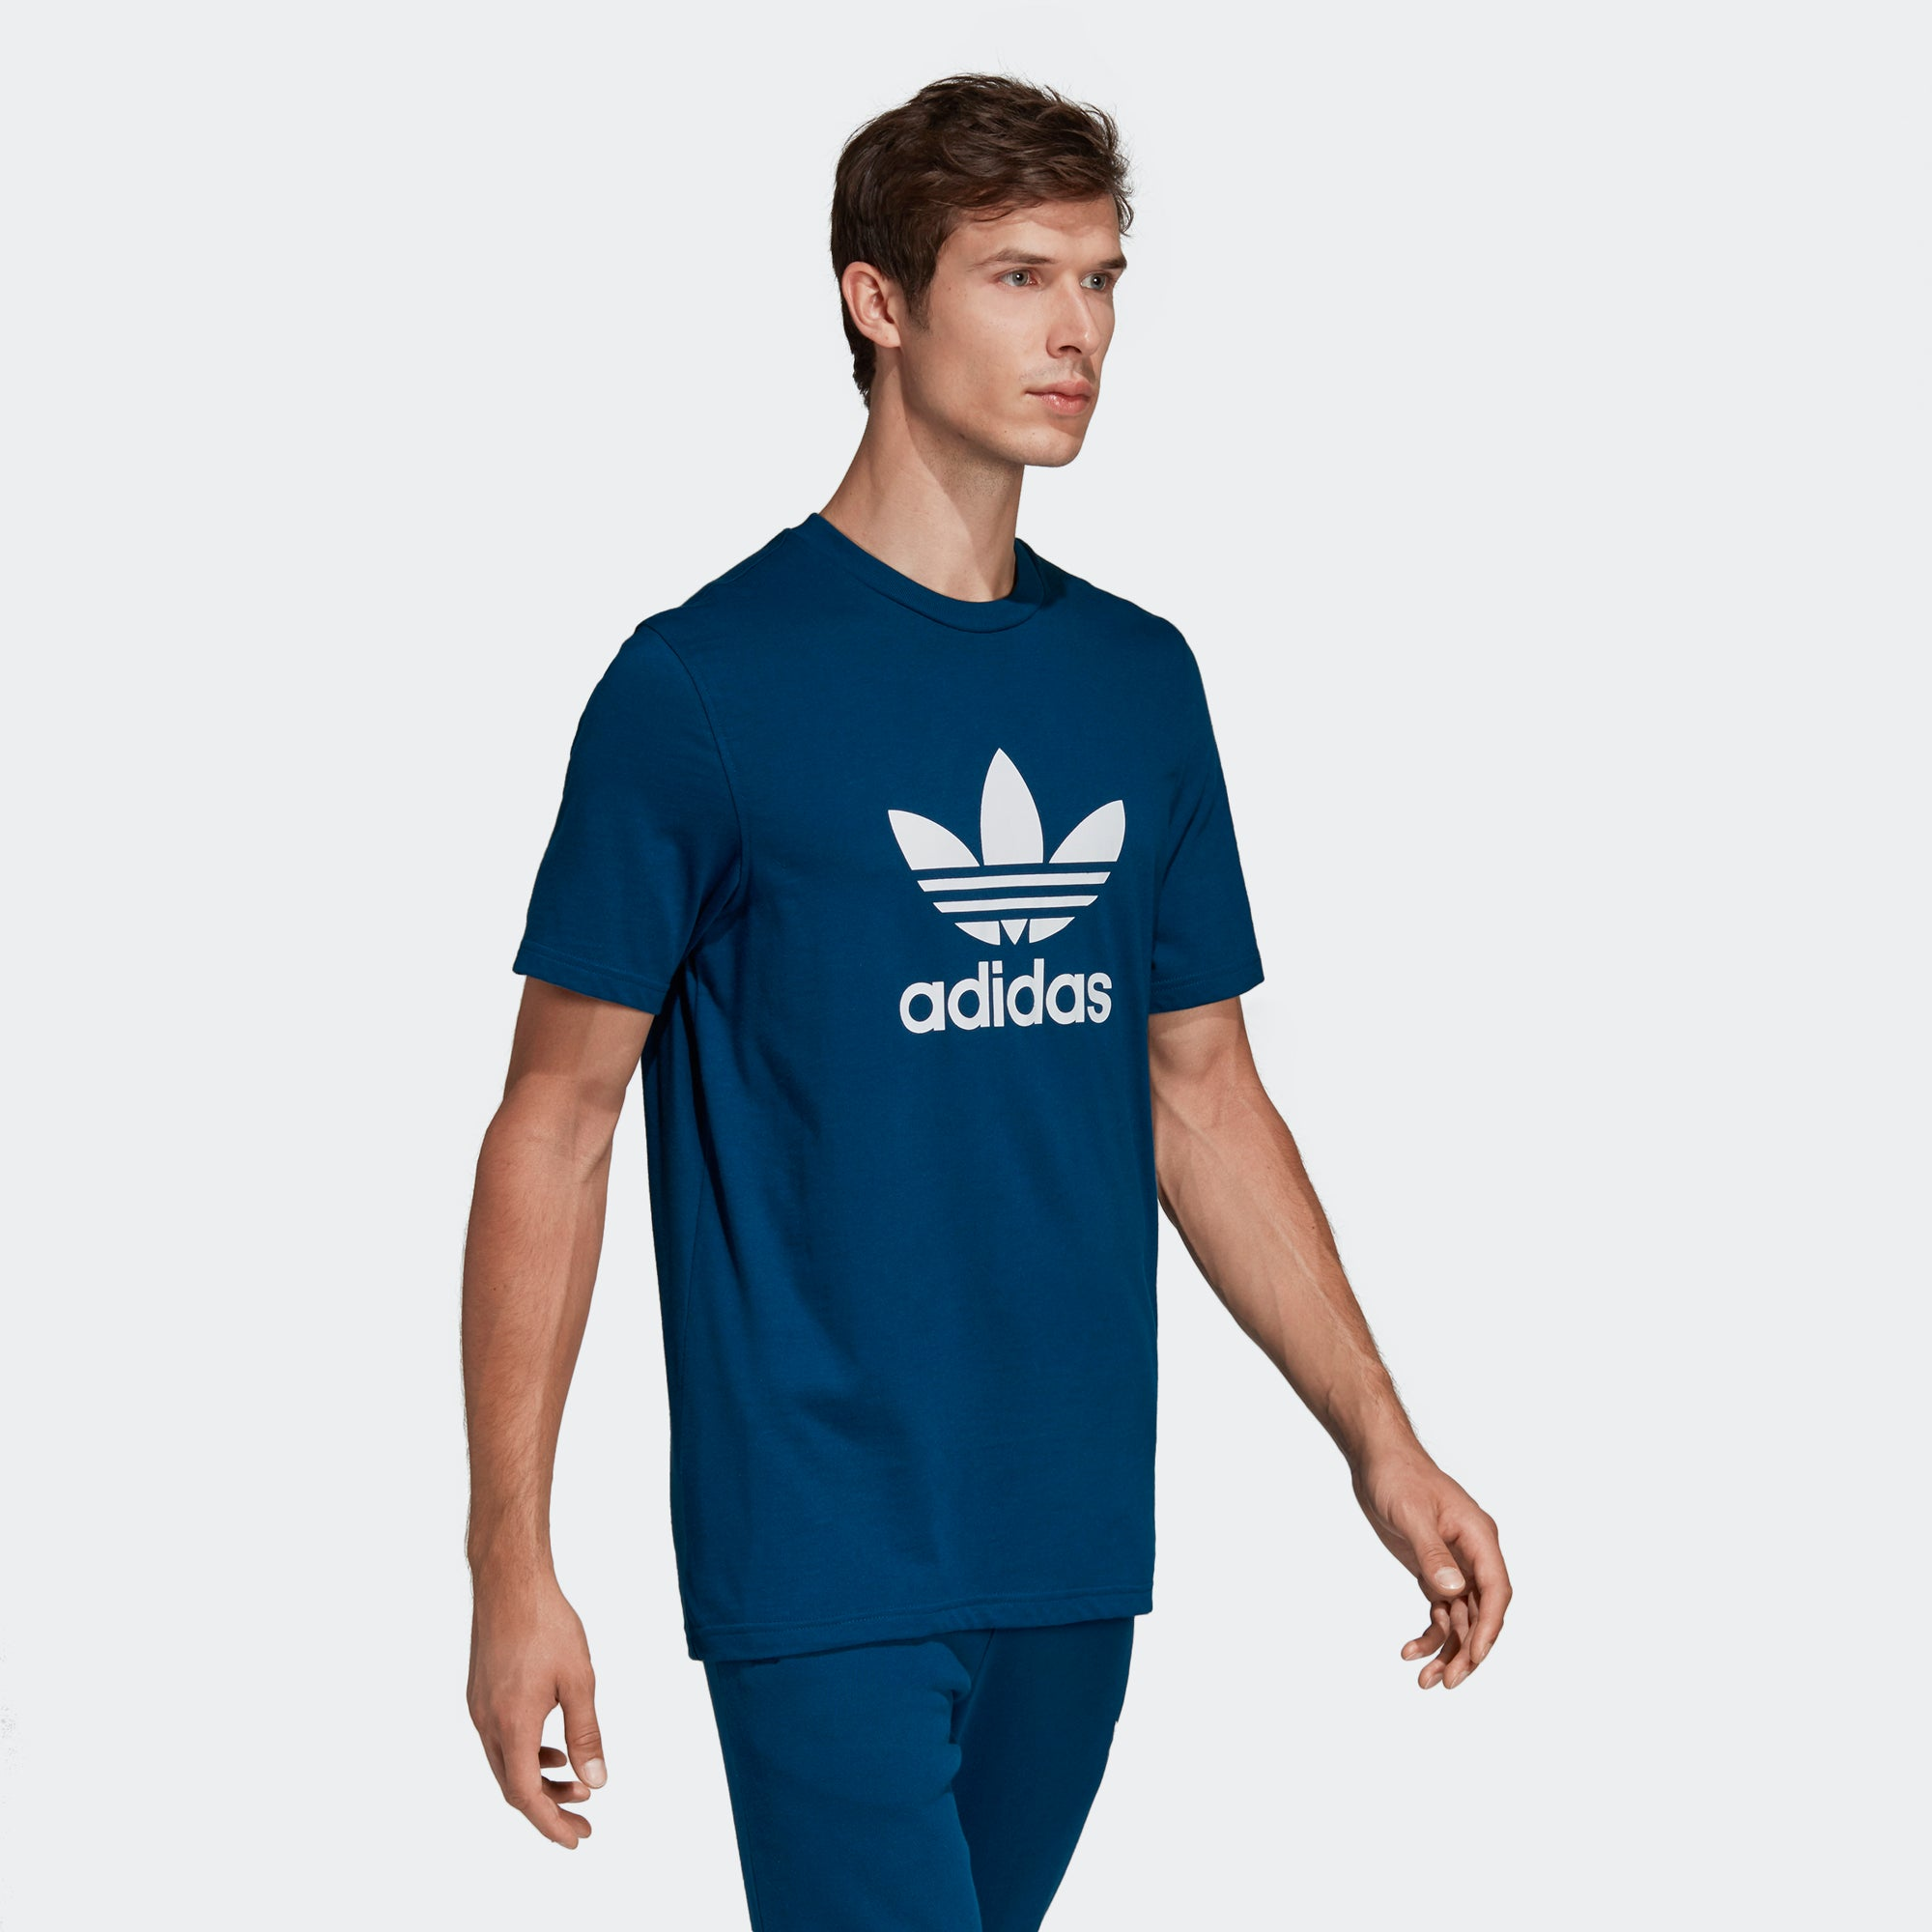 adidas Trefoil Tee Legend Marine DV1603 | Chicago City Sports